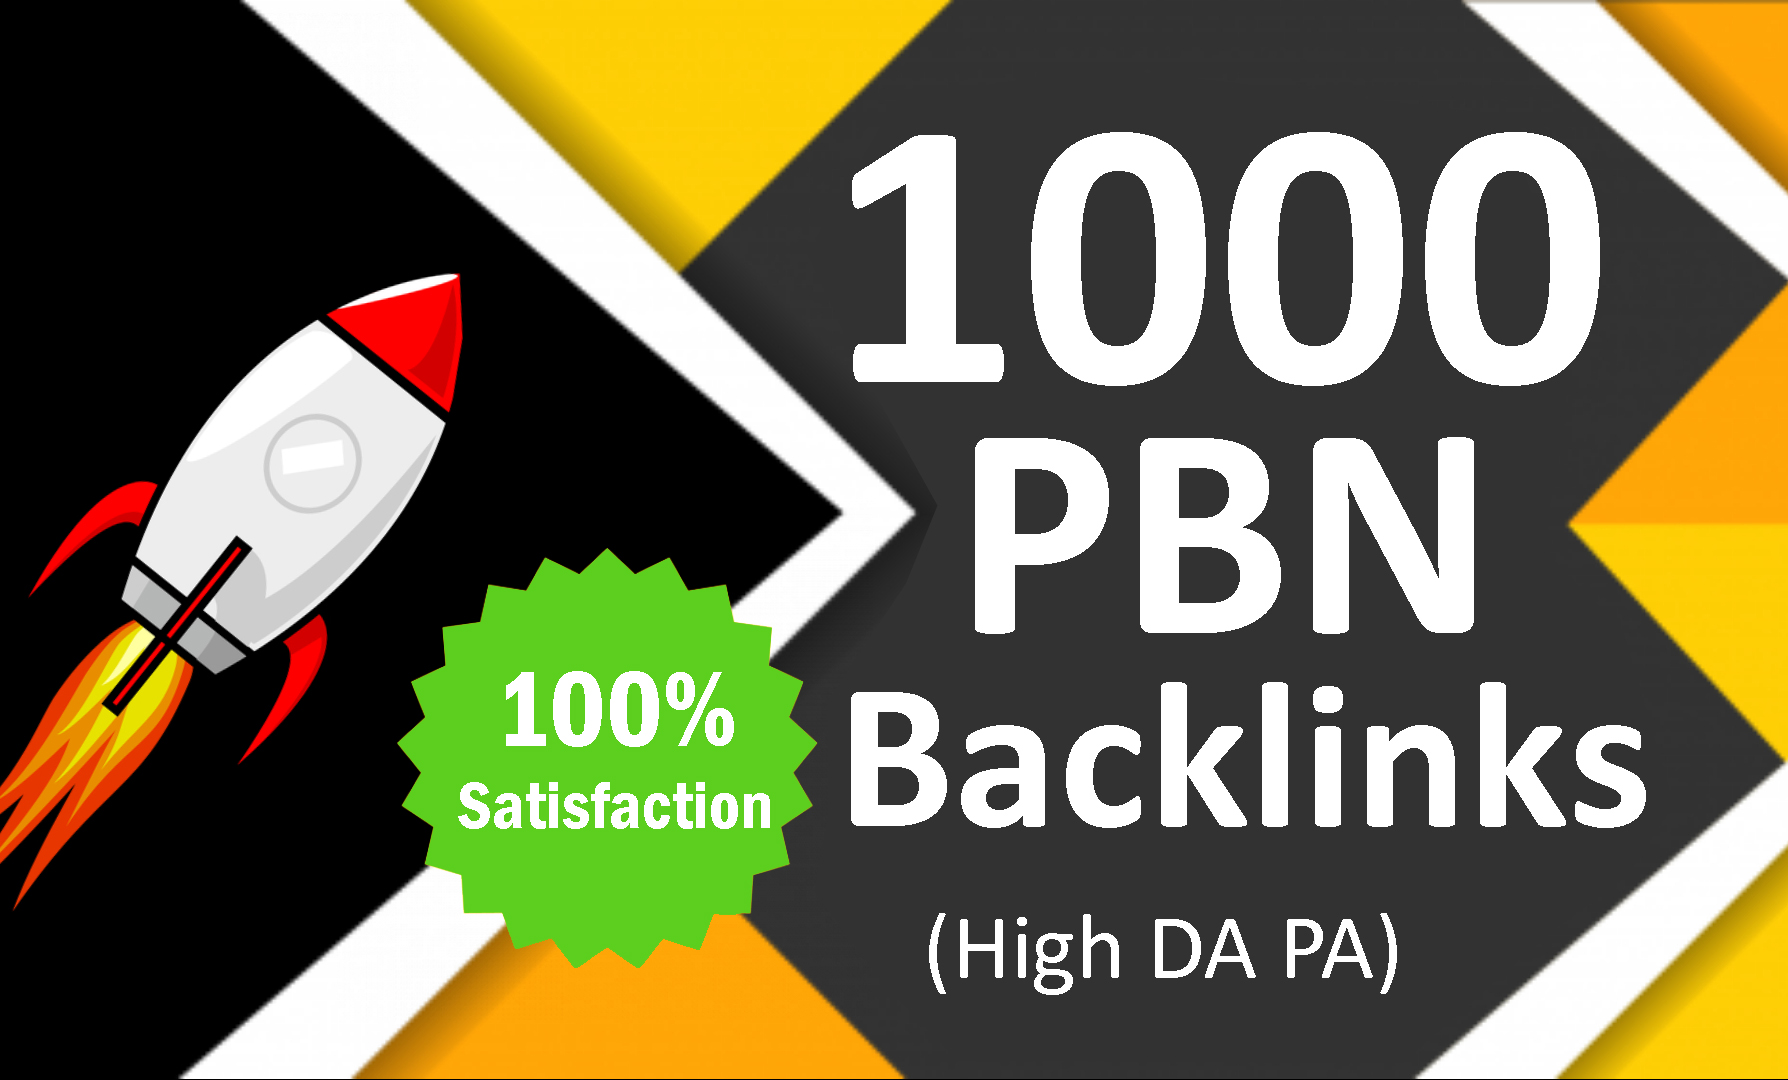 1000 PBN Backlinks from high DA PA